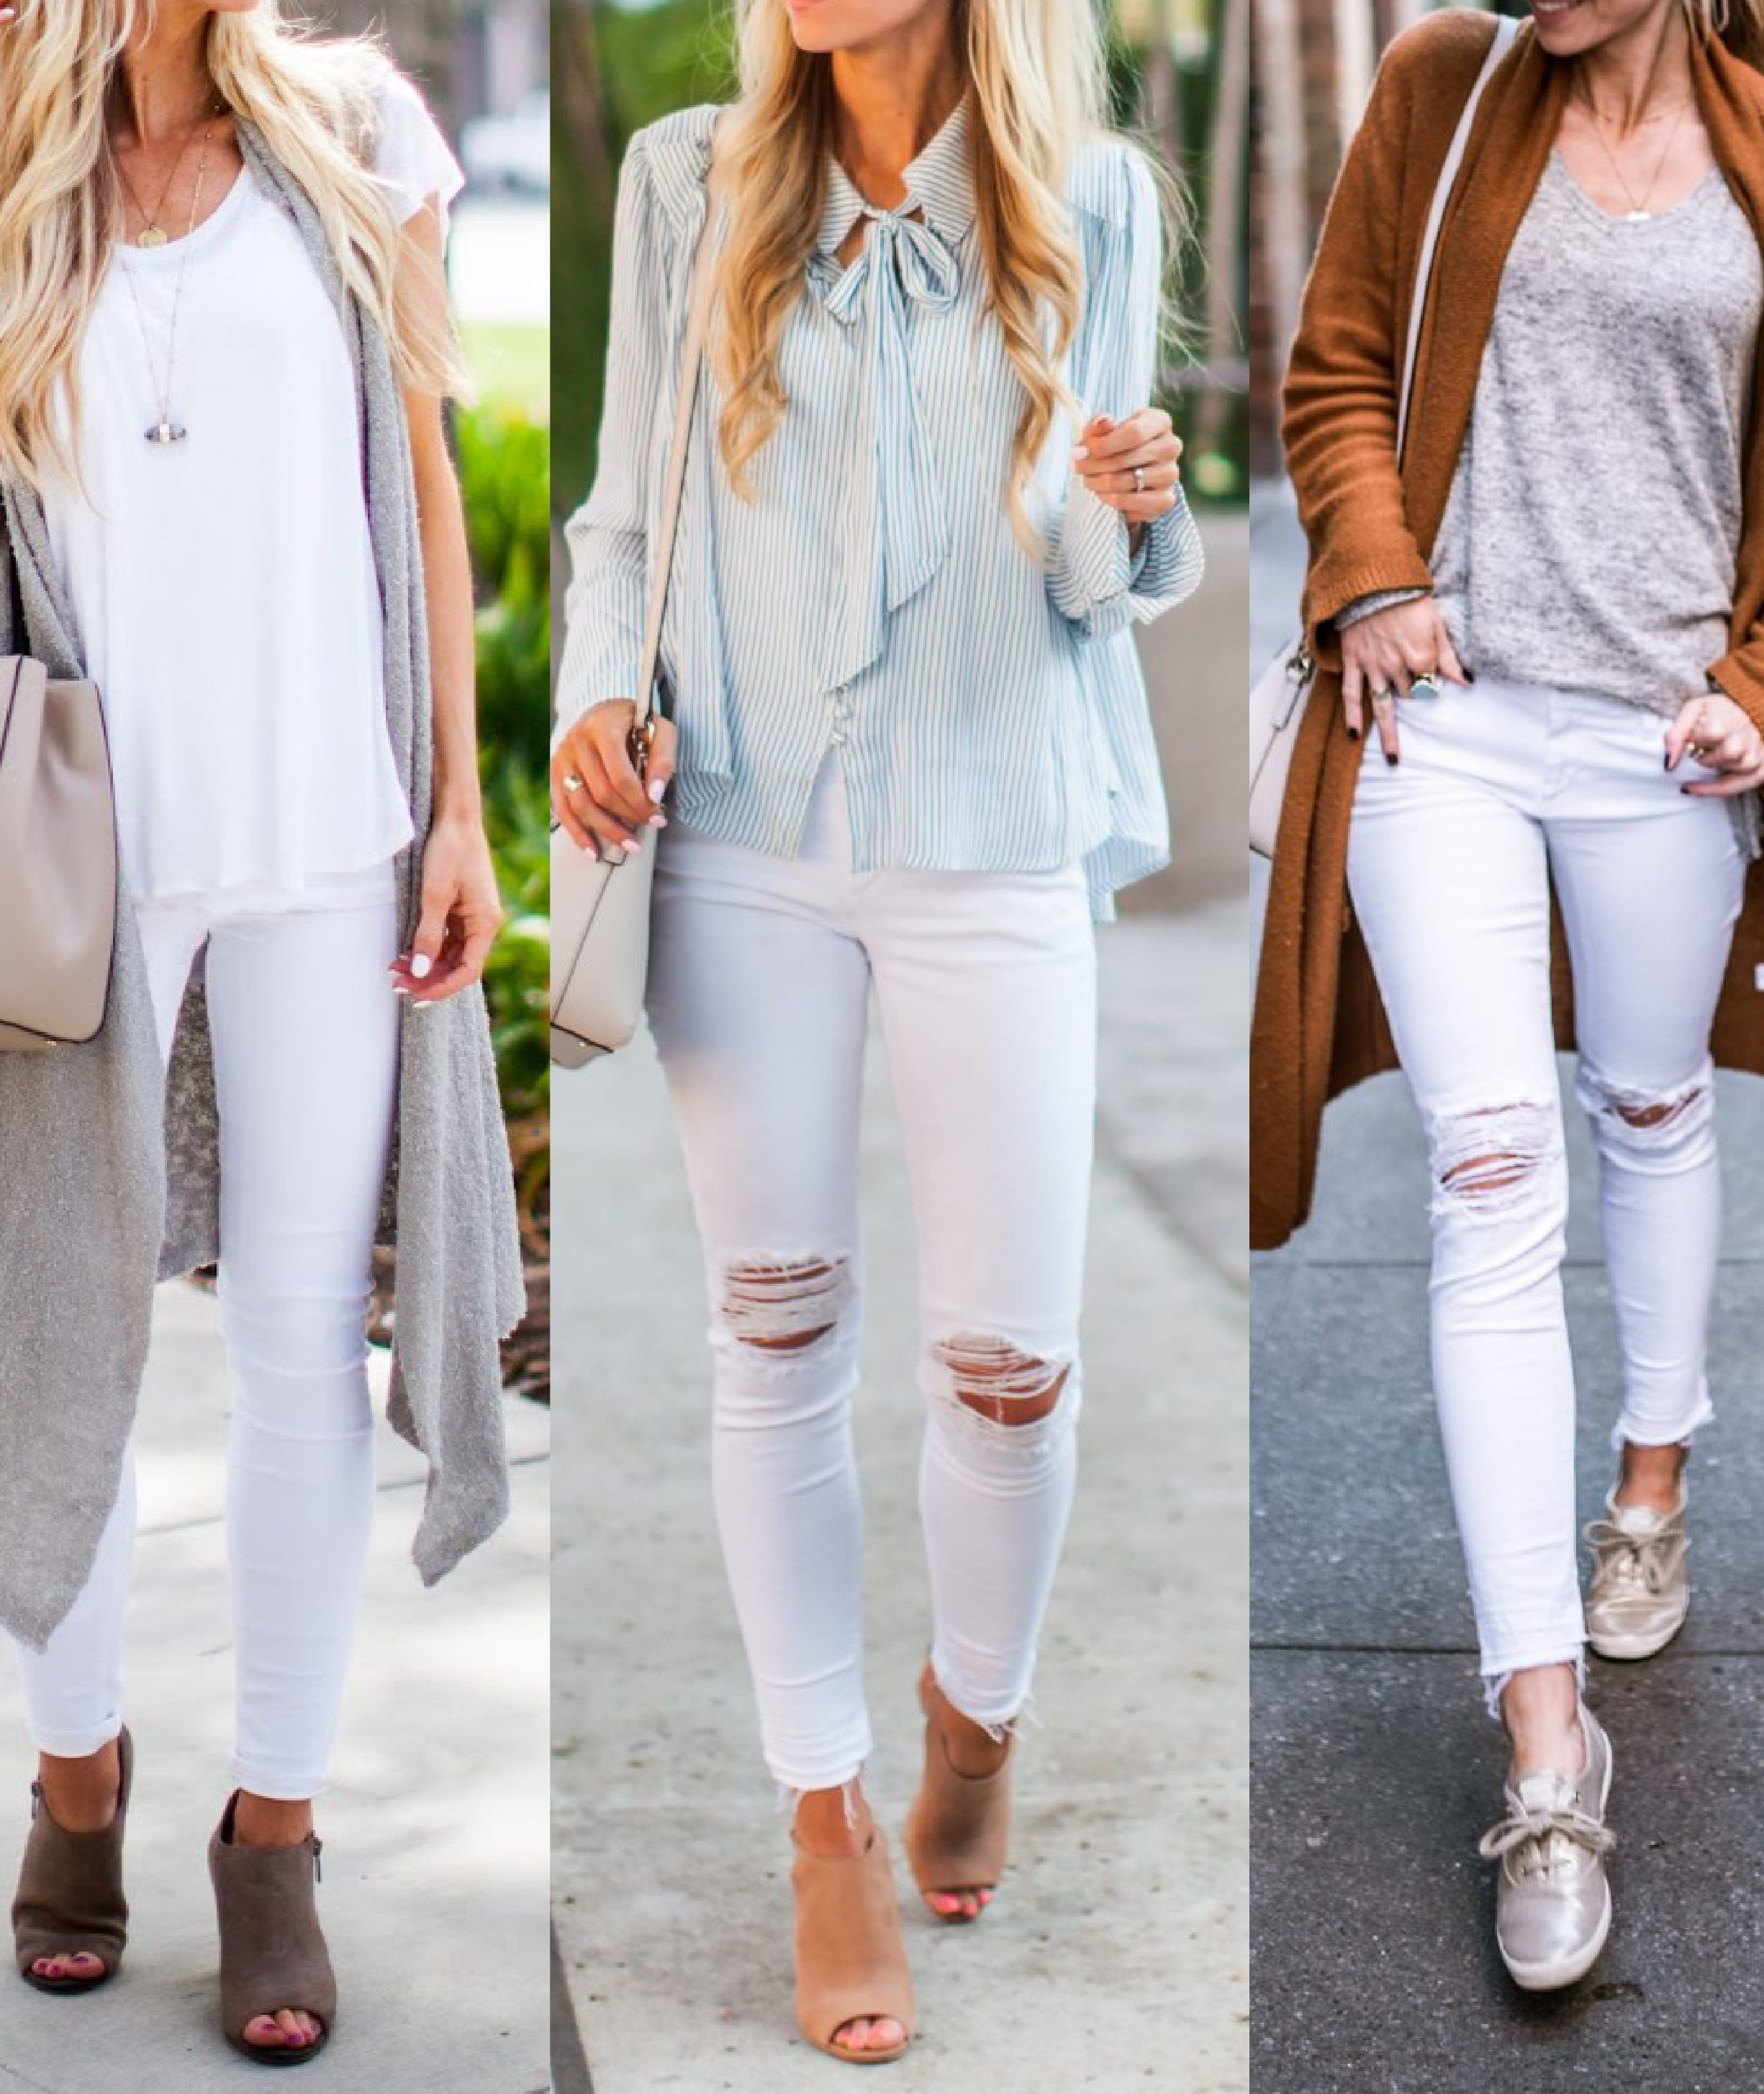 11 WAYS TO STYLE WHITE JEANS FOR SPRING